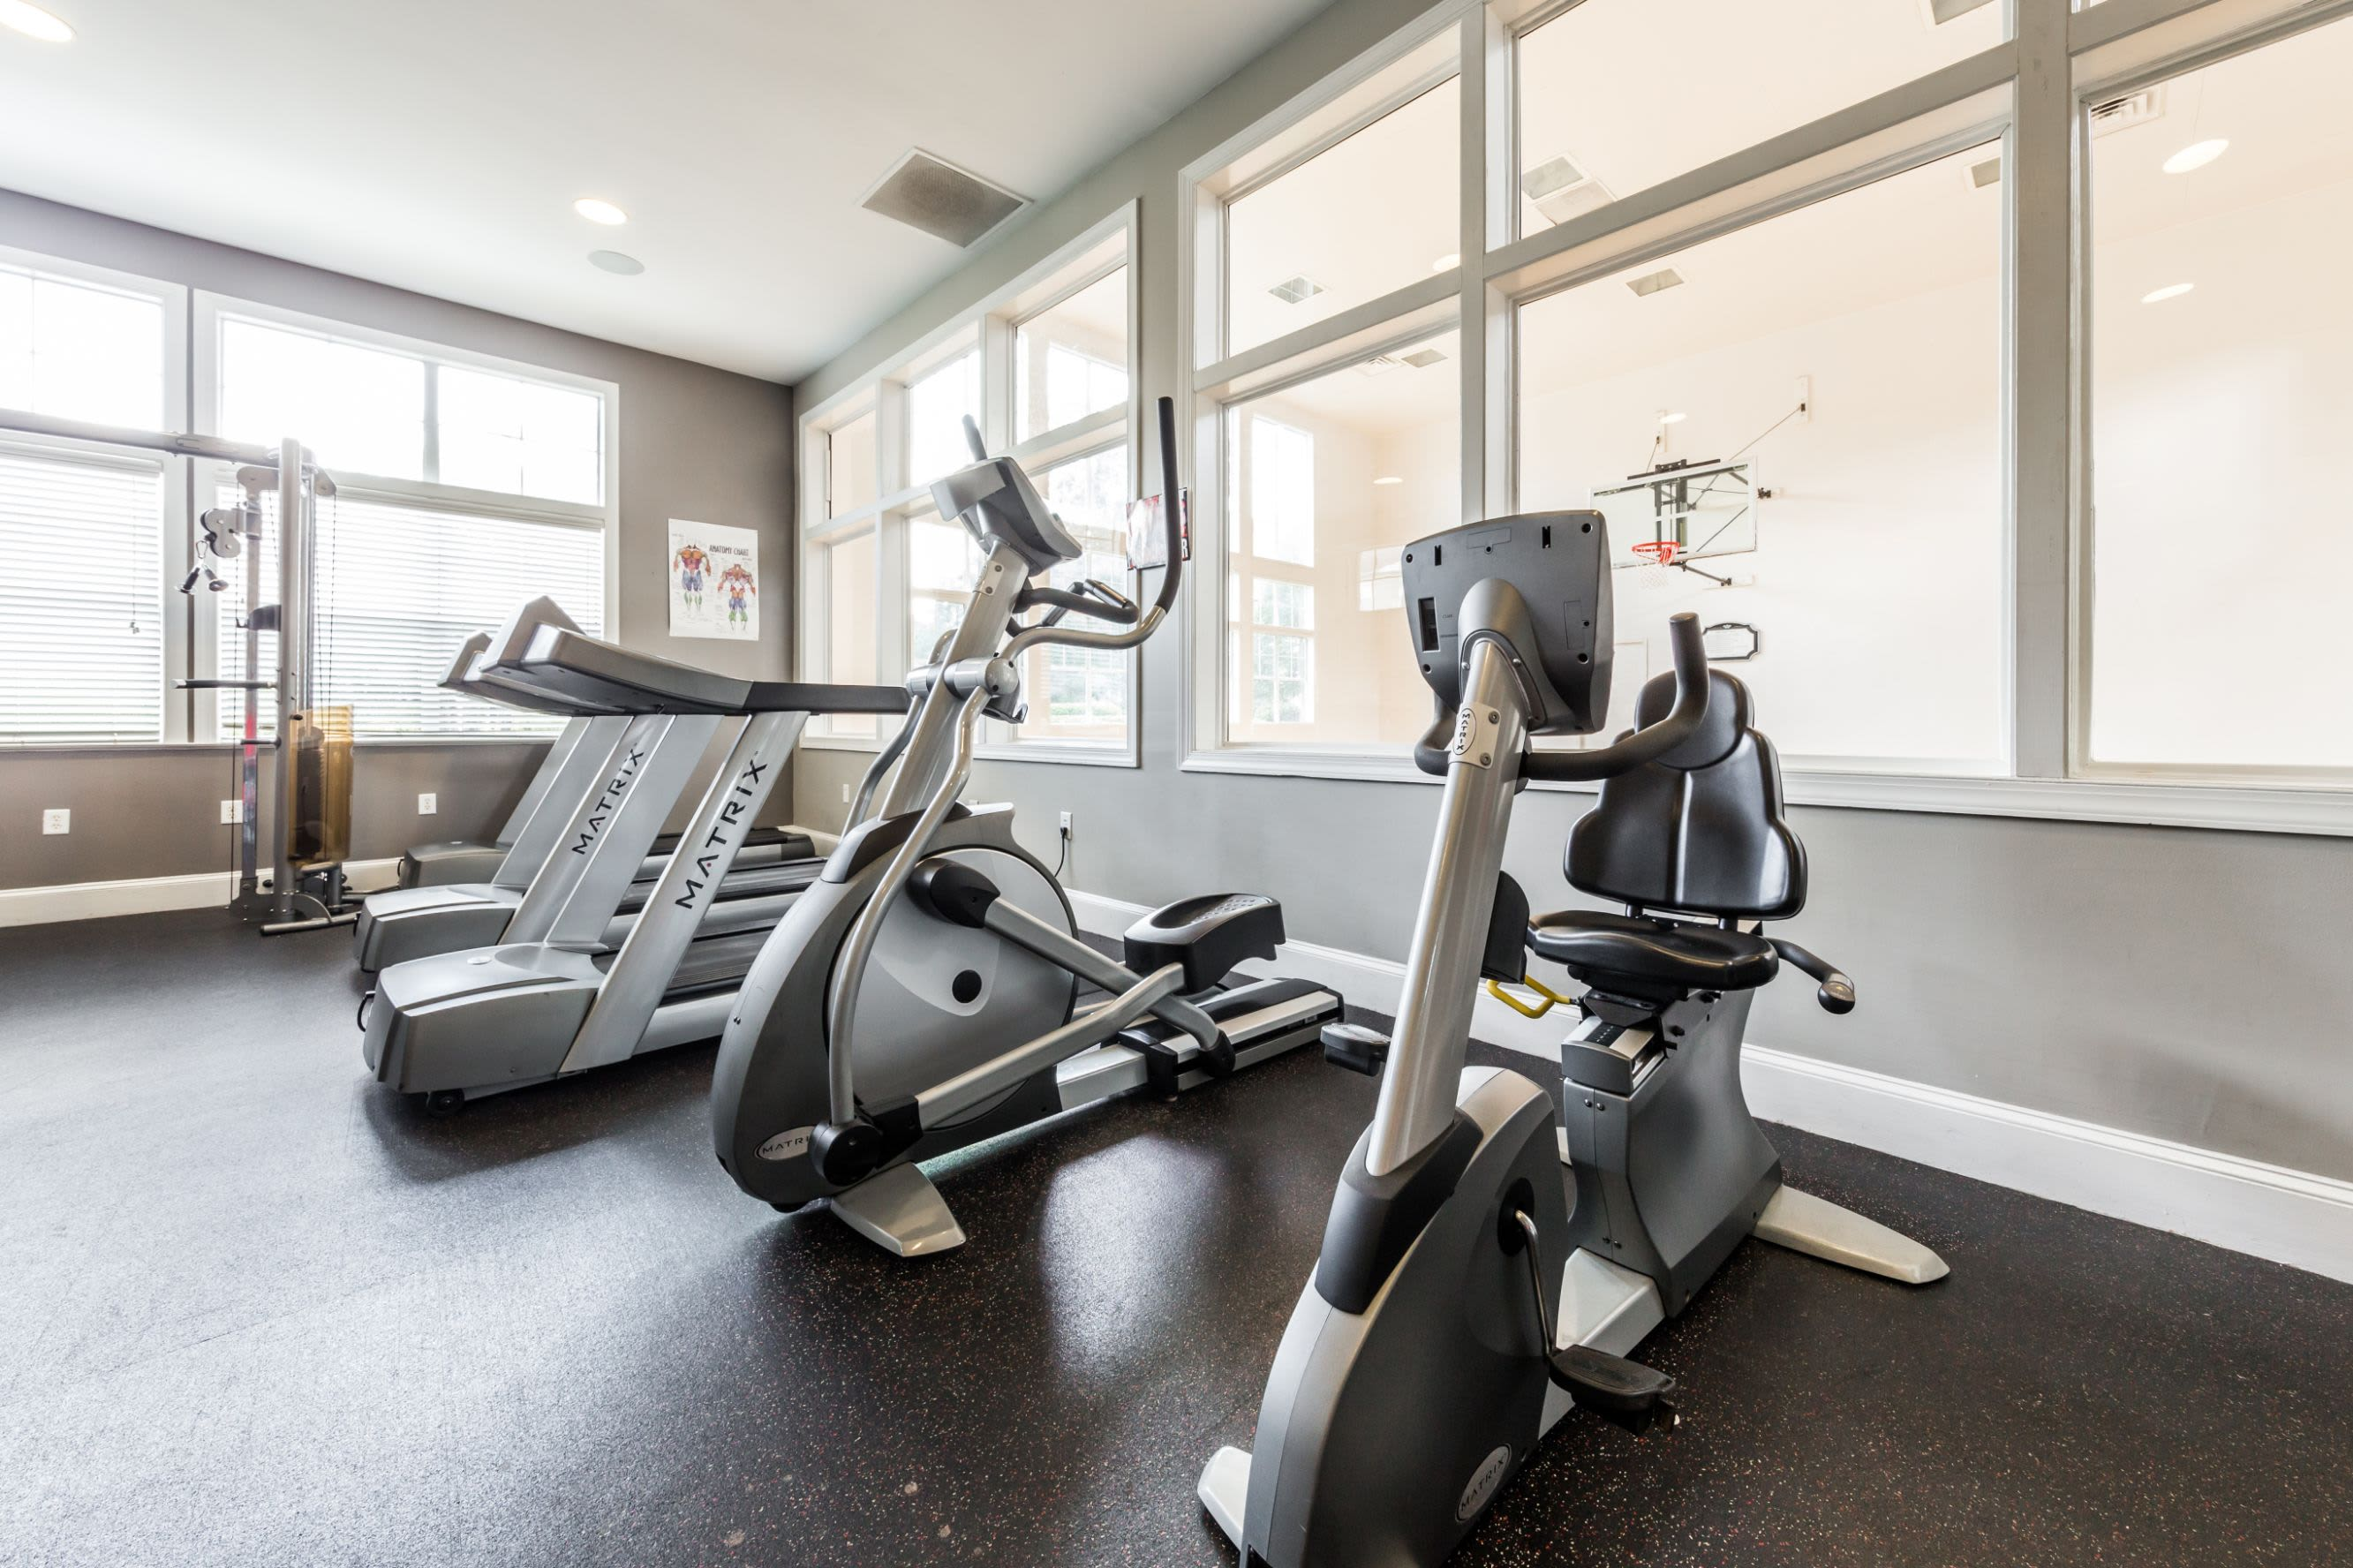 Cardio machines at The Preserve at Ballantyne Commons in Charlotte, North Carolina